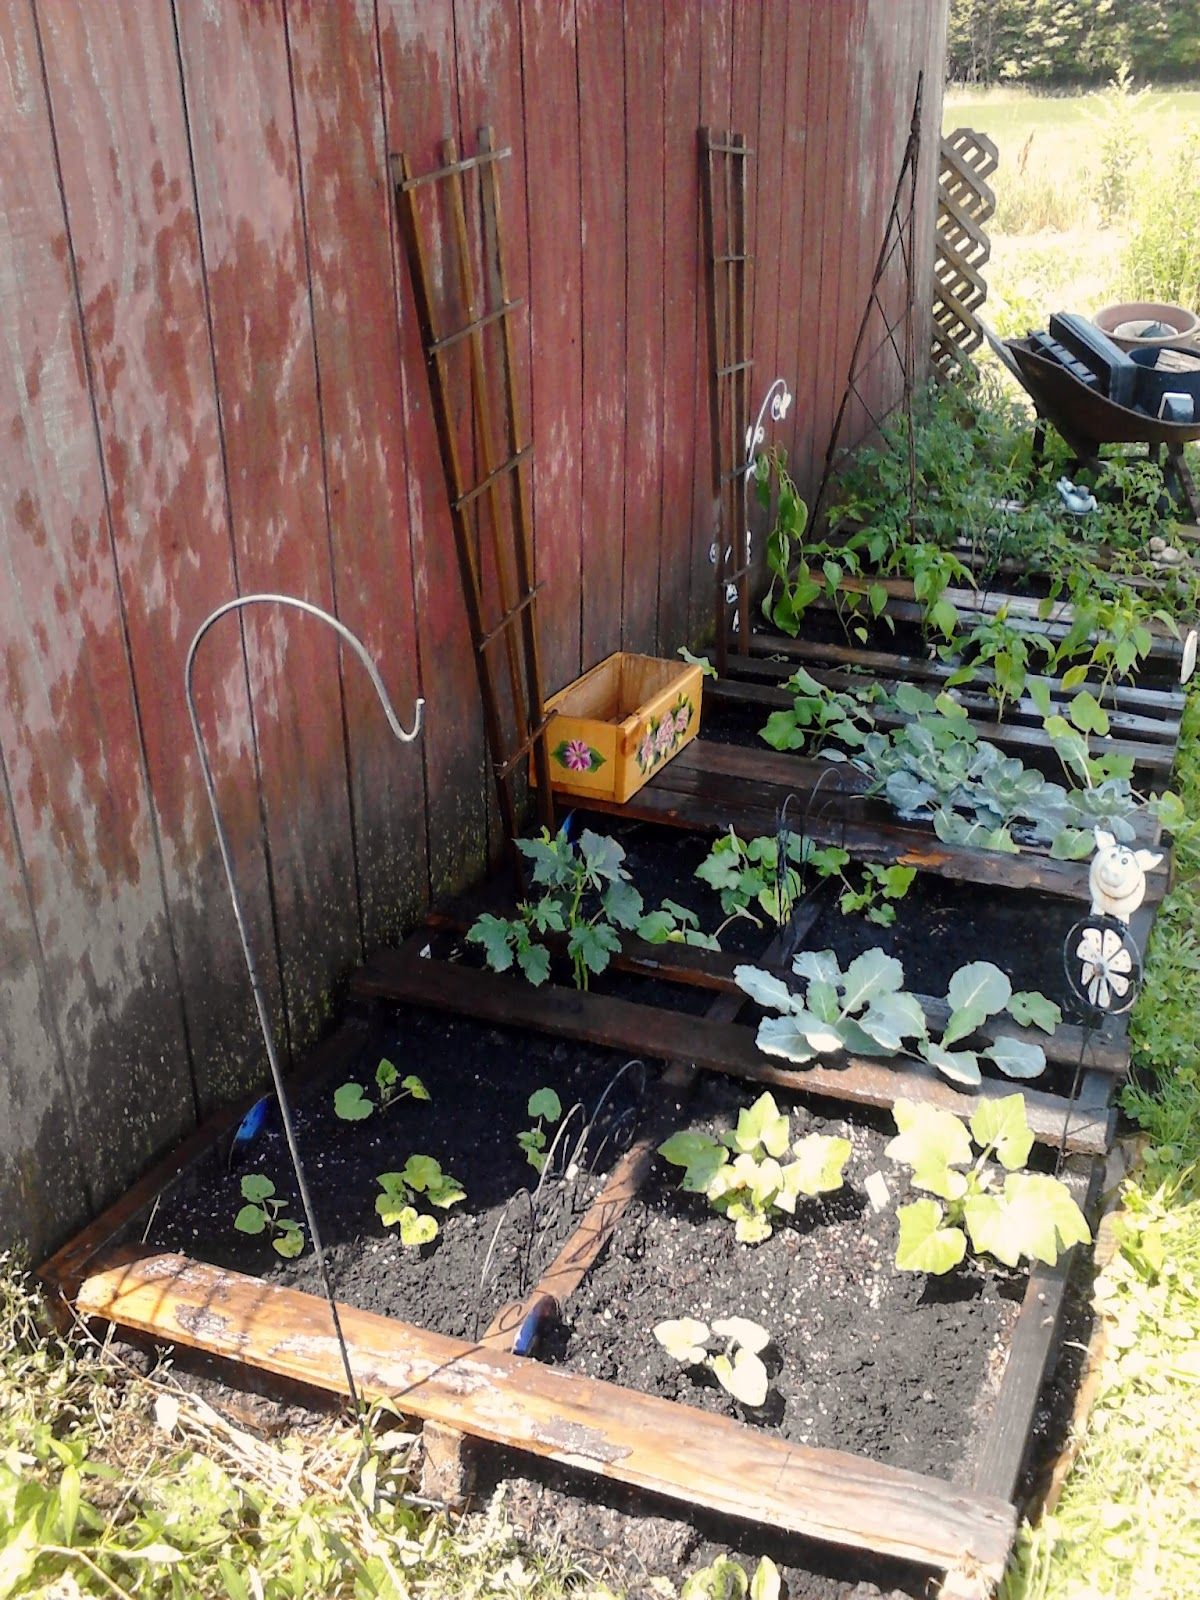 Reputable Country Life My Pinterest Pallet Garden Country Life My Pinterest Pallet Garden Gardening Pallet Planter Pinterest garden Pallet Gardens Pinterest